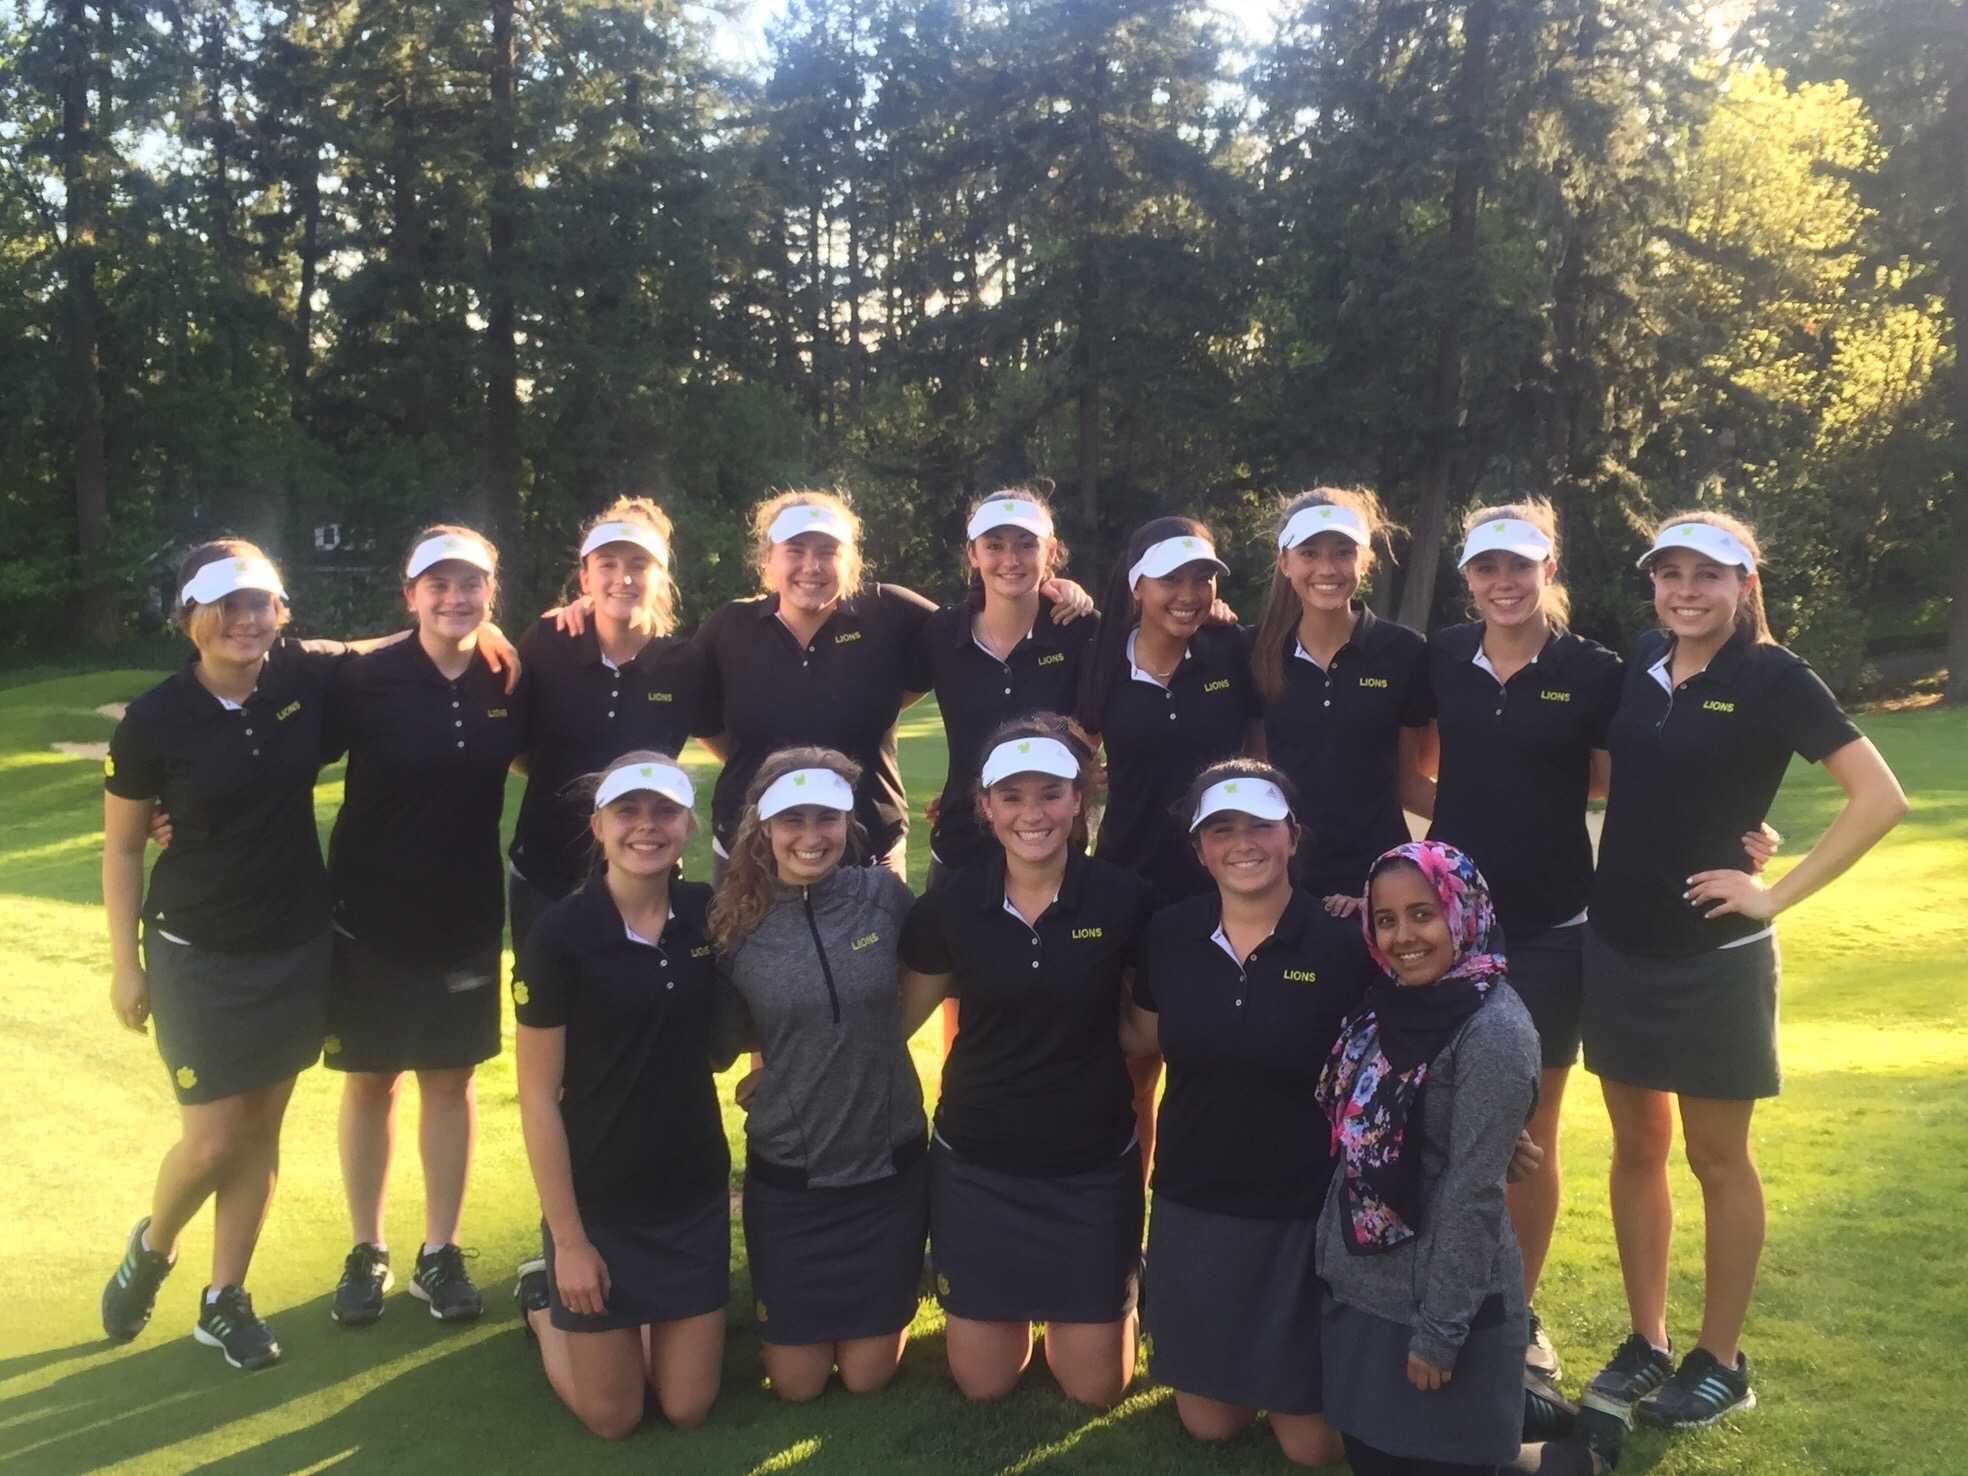 The Varsity Girls Golf Team took first place at the Oswego Lake Country Club. The Girls Golf Team plays May 4 at the Arrowhead Golf Club and the Boys Golf Team plays May 4 at the Stone Creek Golf Club.